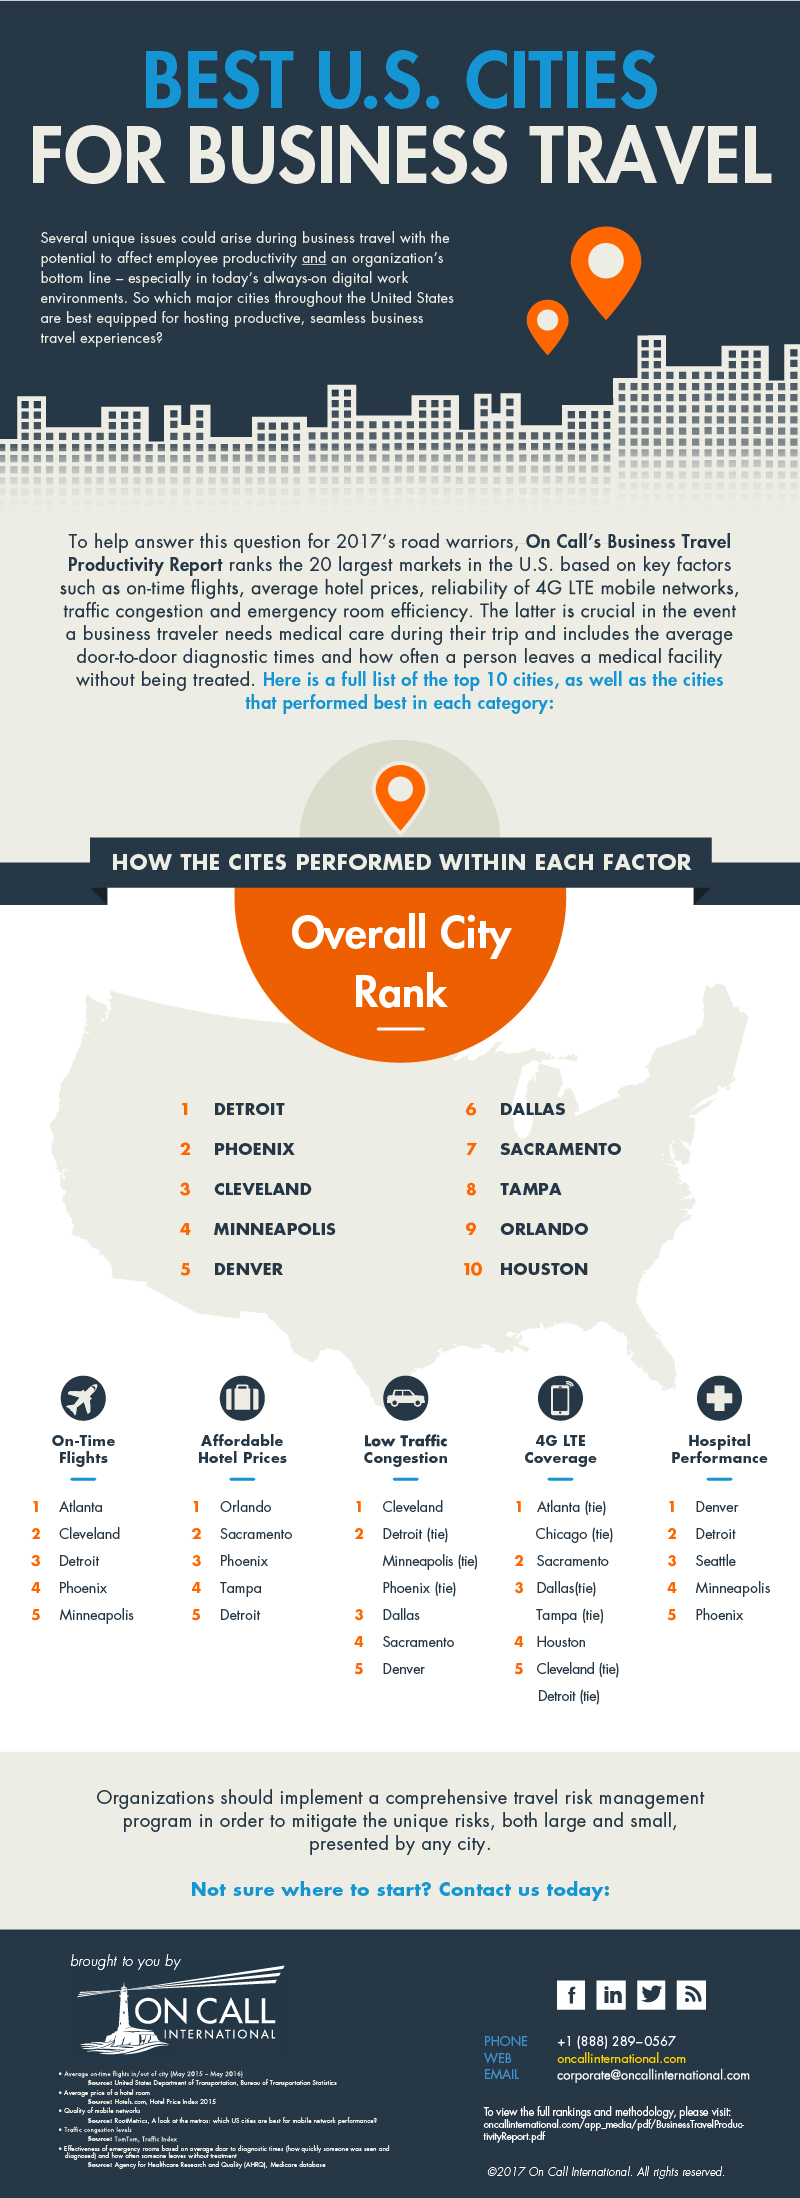 Top Cities in the U.S. for Productive Business Travelv3-01